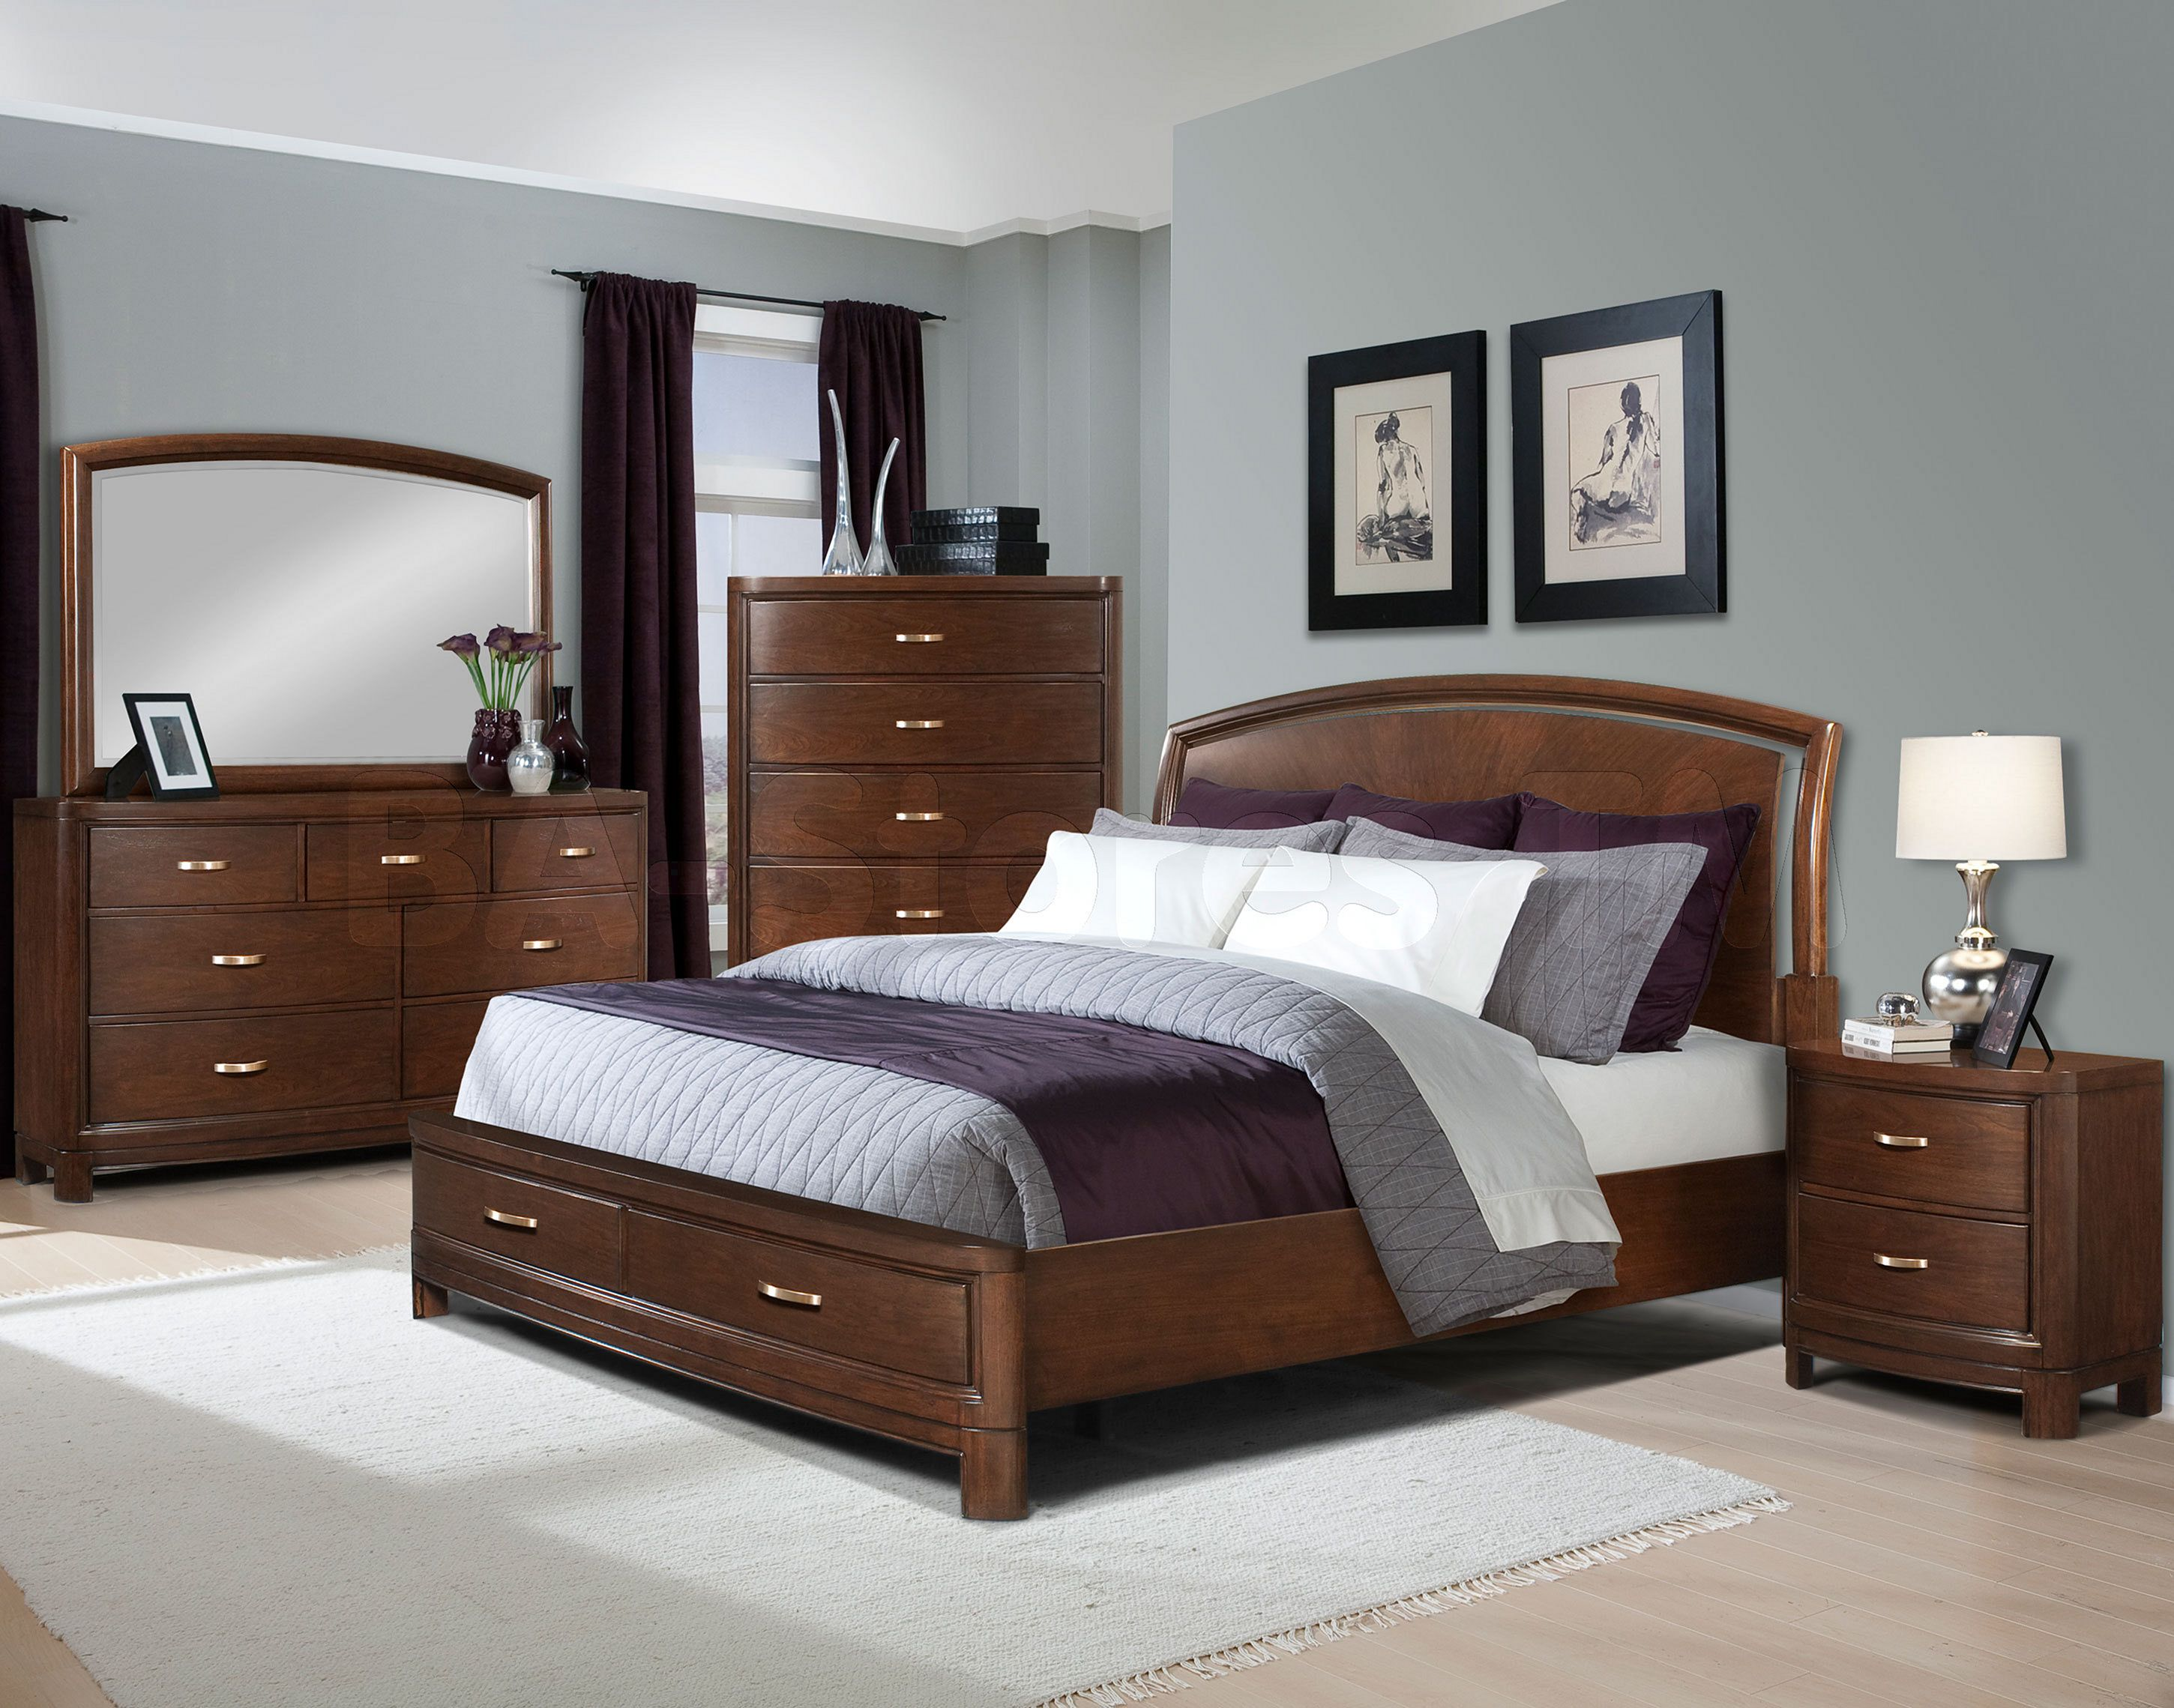 bedroom furniture makeover ideas photo - 10